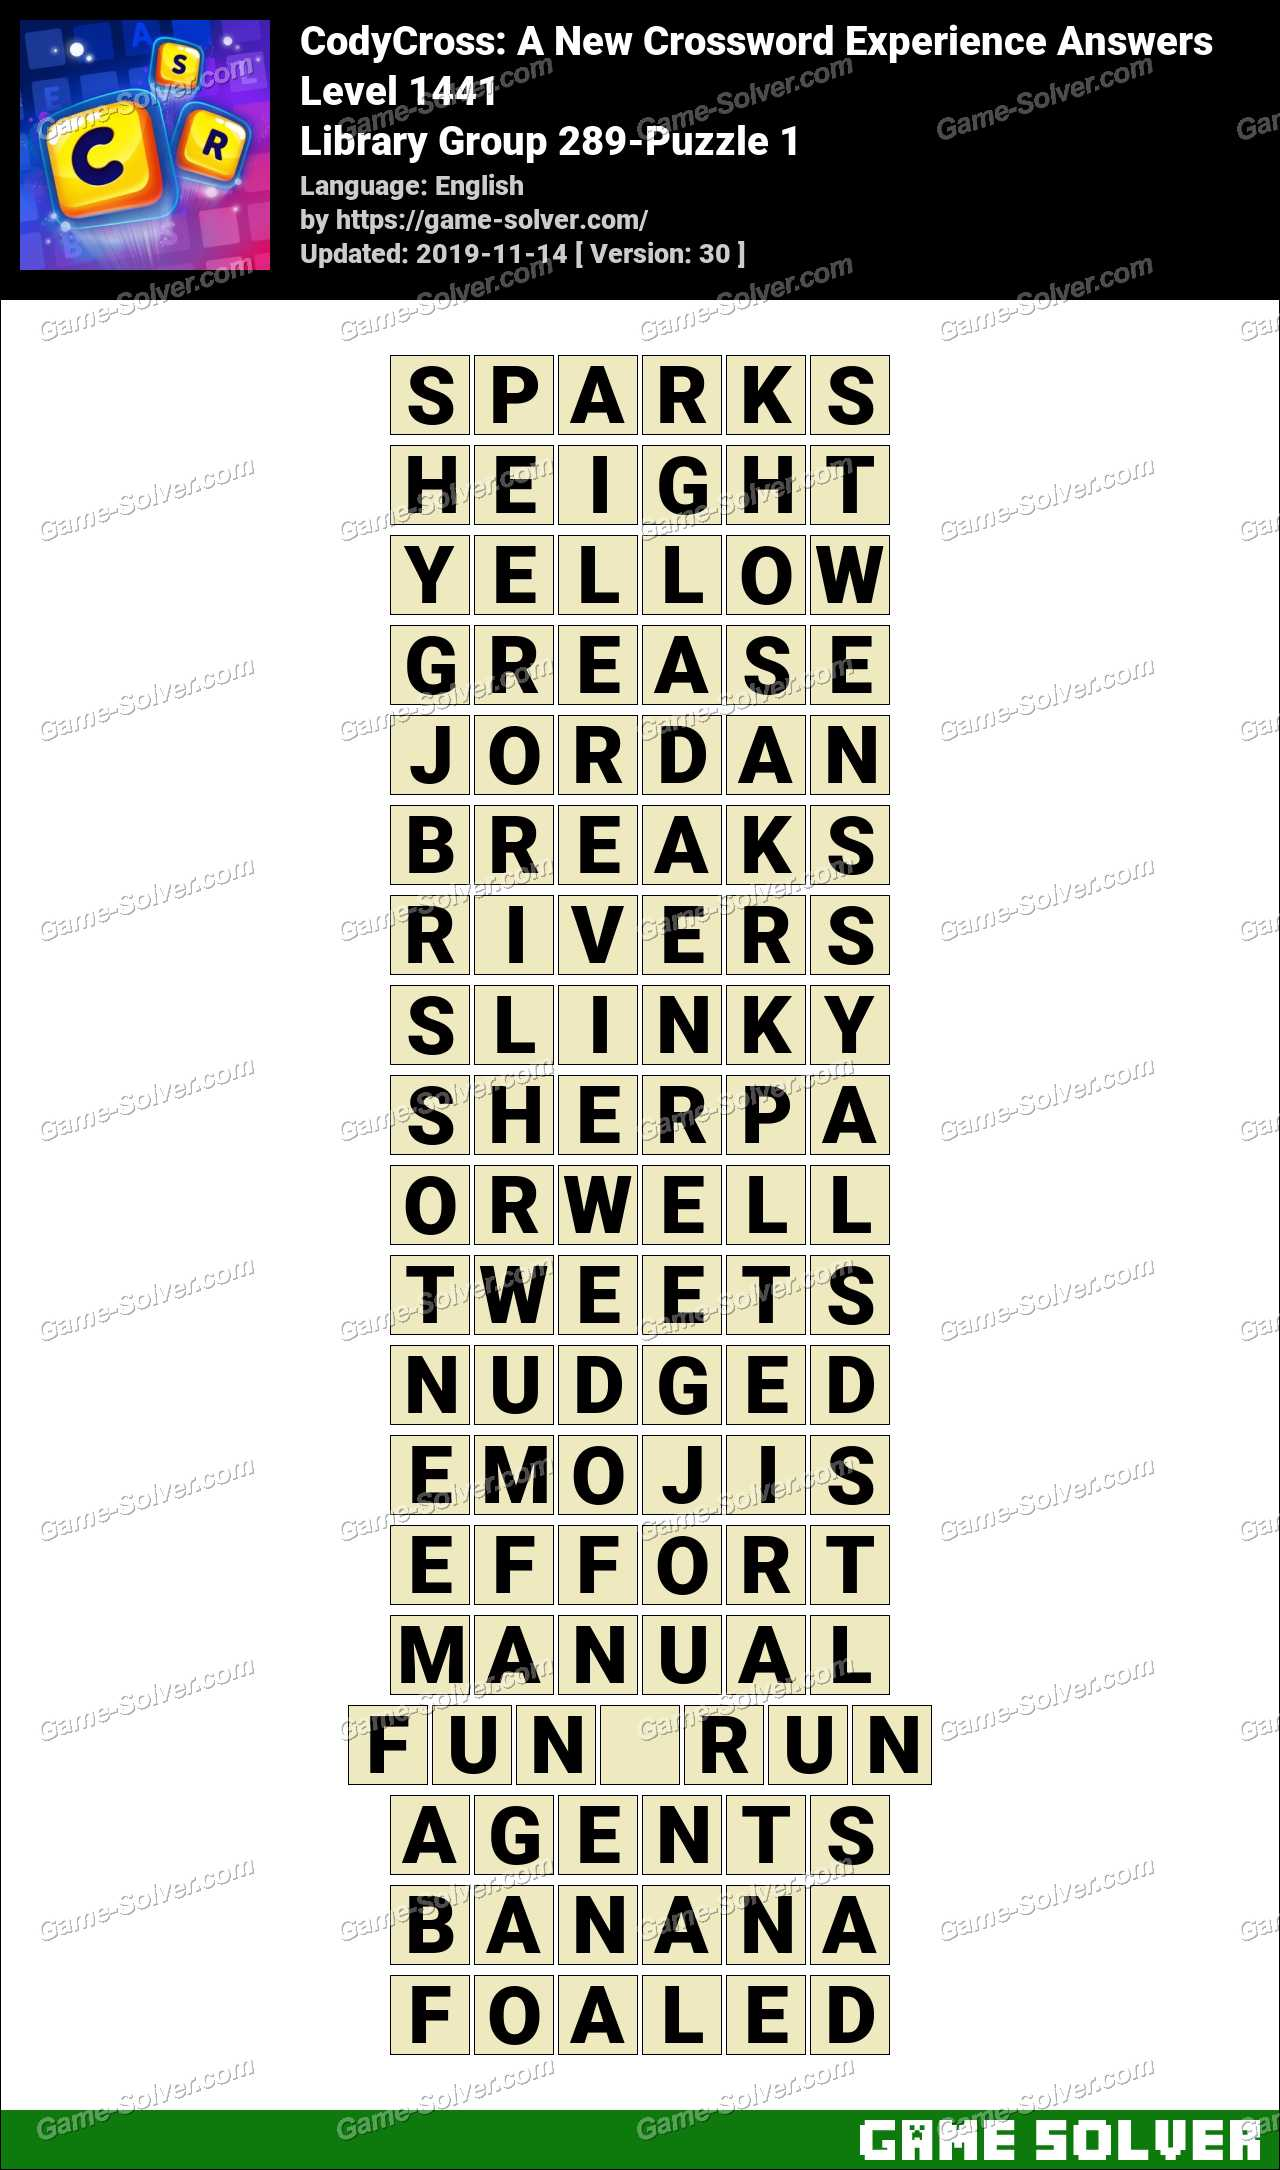 CodyCross Library Group 289-Puzzle 1 Answers